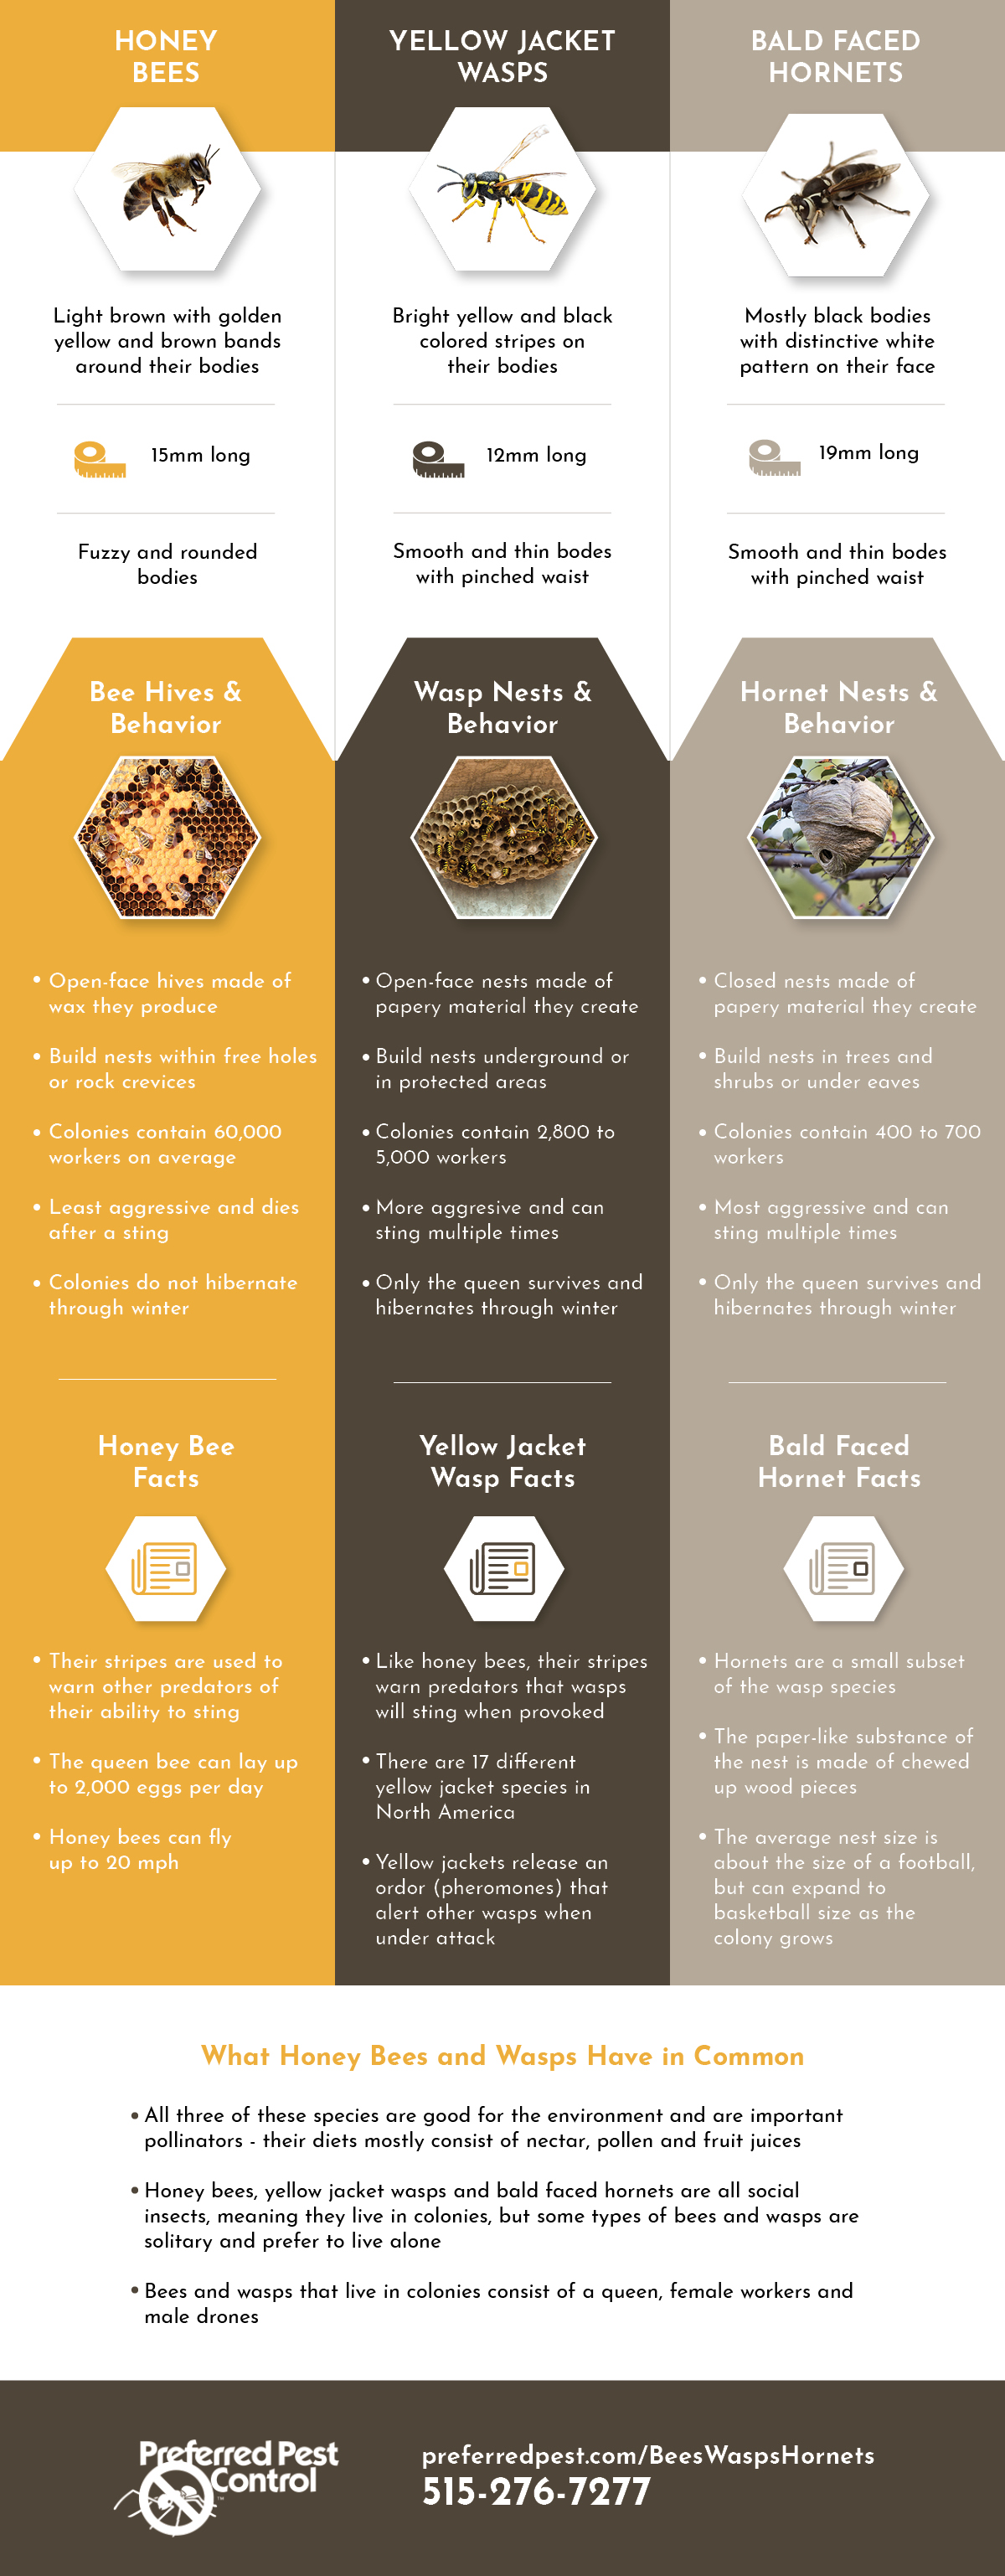 difference between bees wasps and hornets.